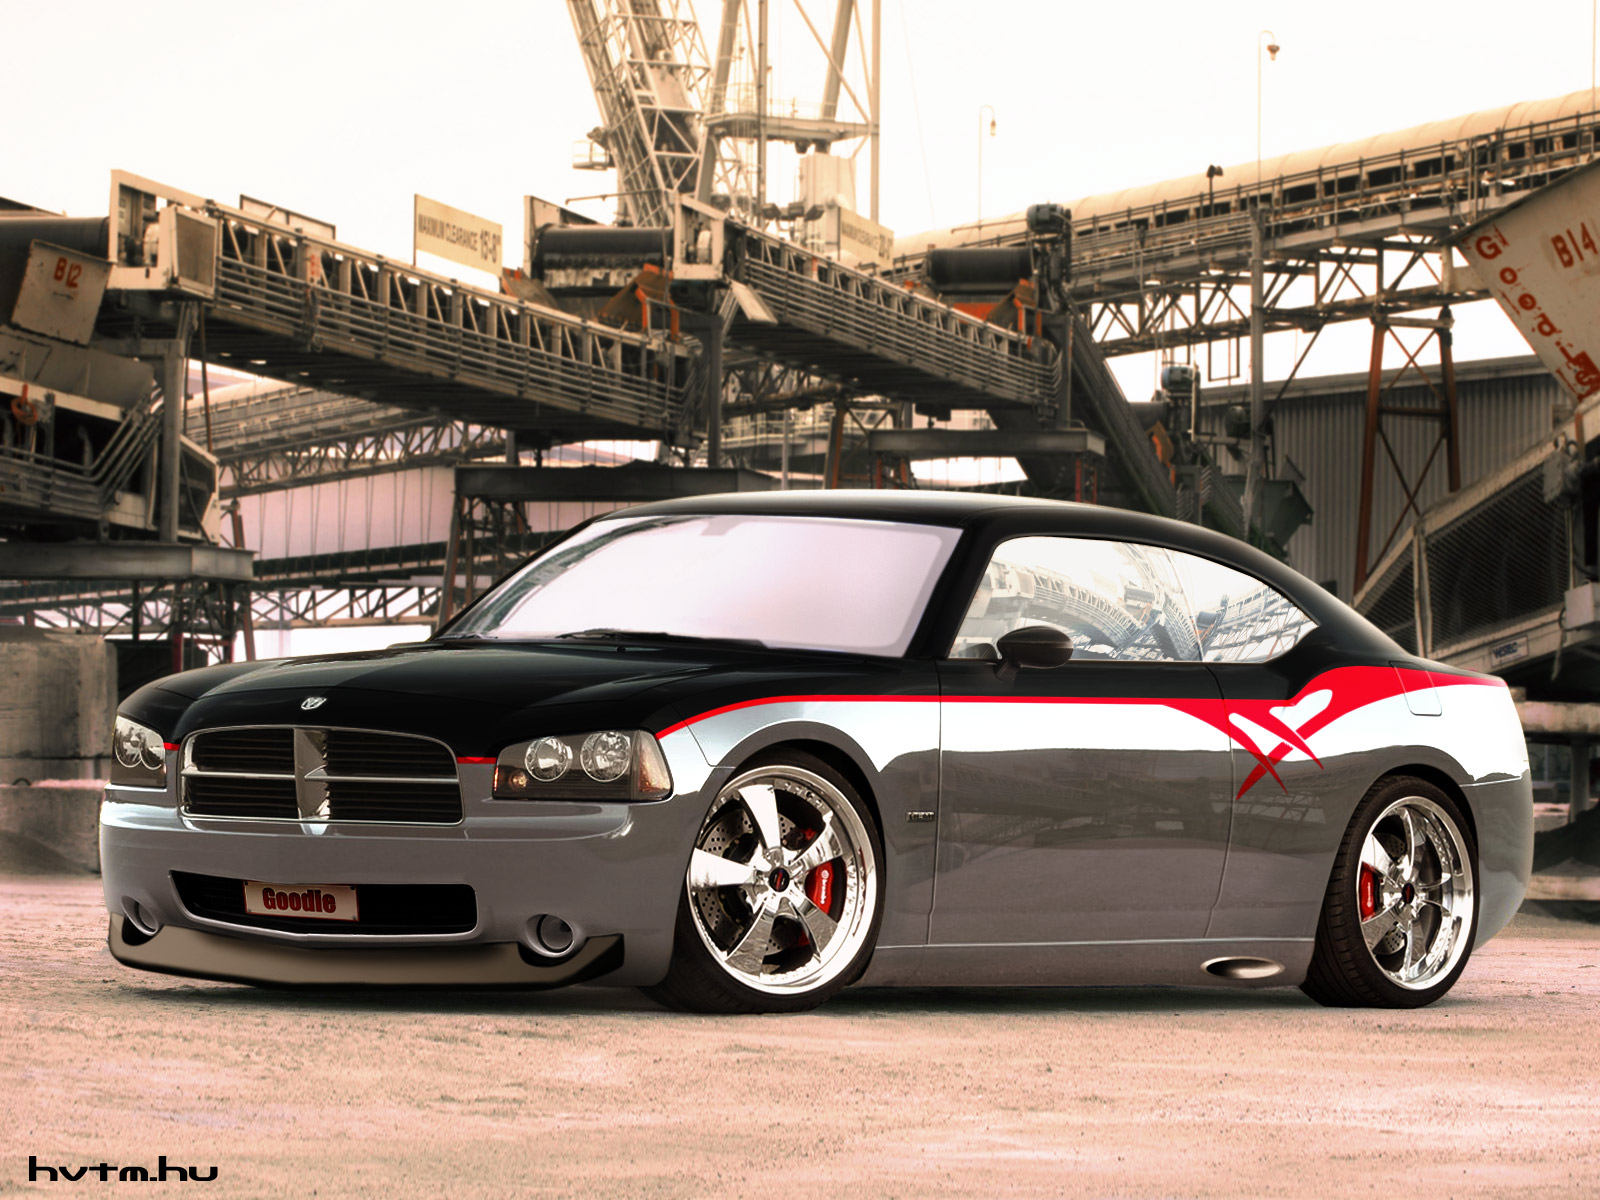 DODGE CHARGER CAR 20